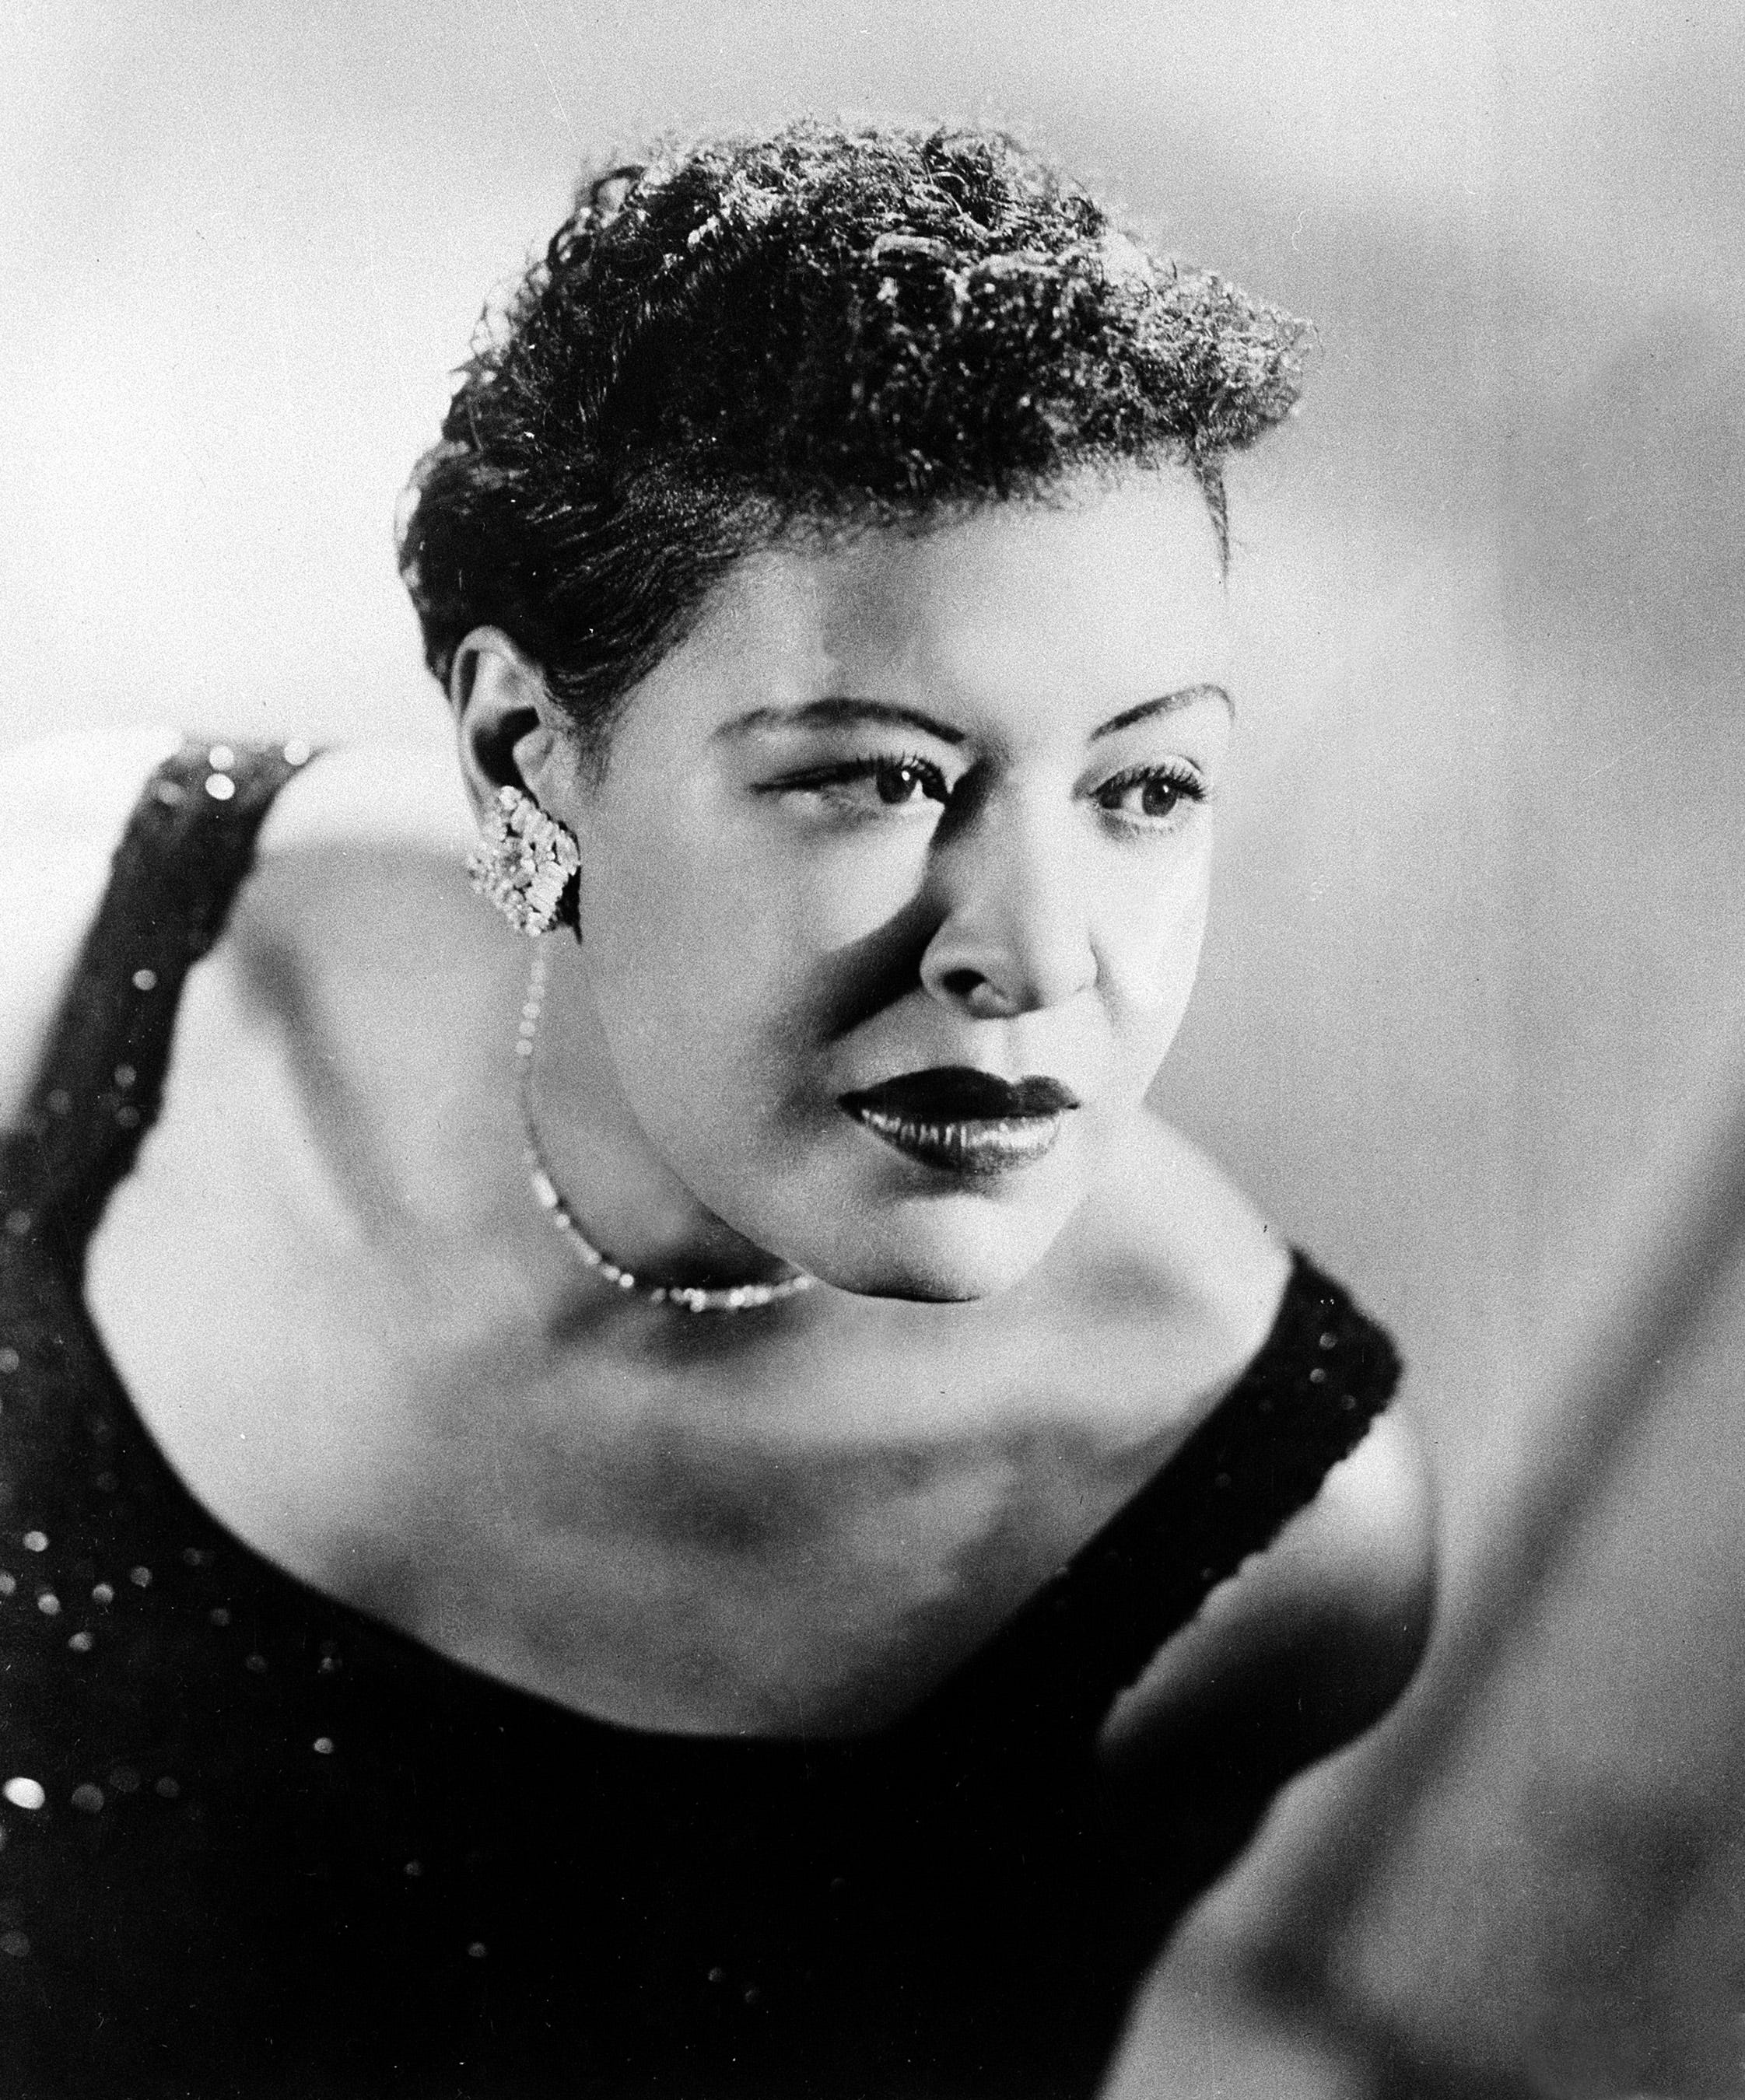 Billie Holiday, the legendary American jazz vocalist, was born on April 7, 1915, and died in 1959 at the age of 44.